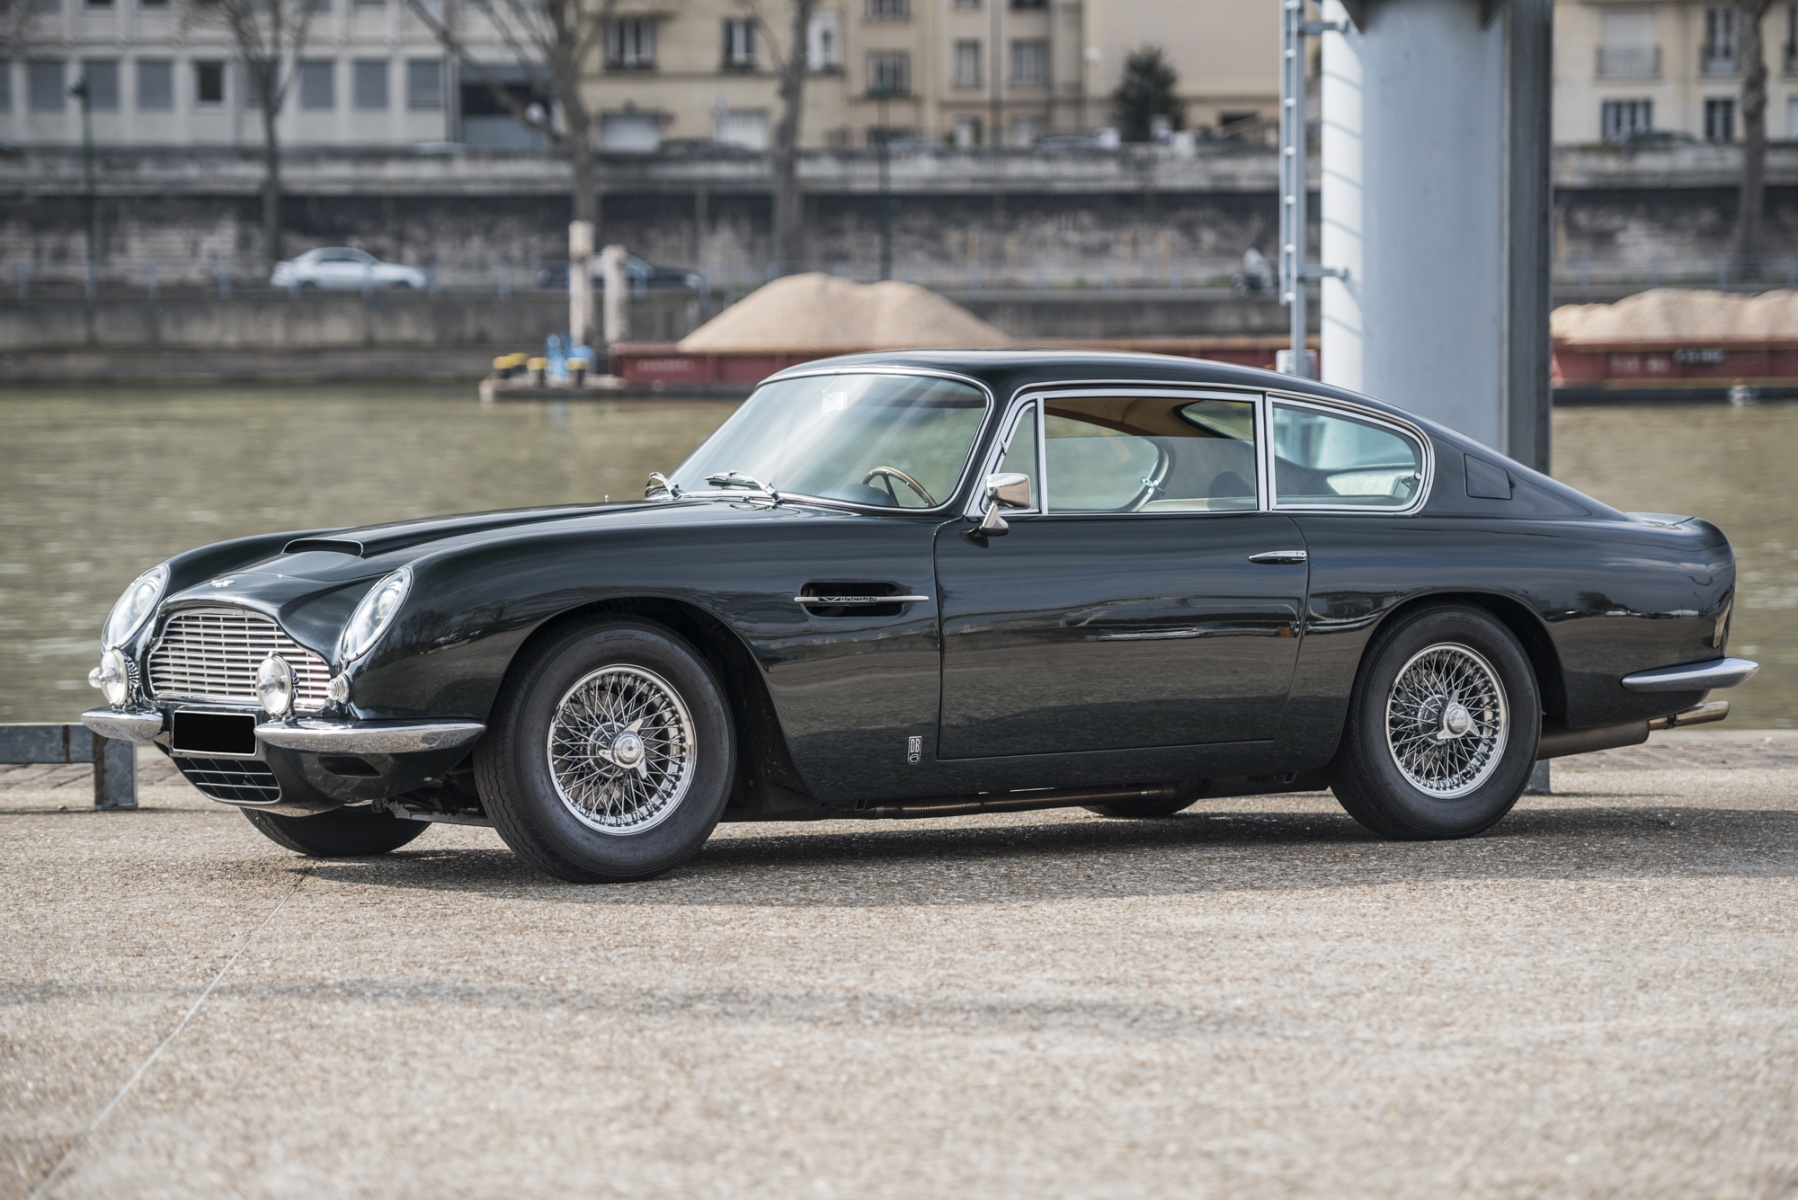 aston martin db6 the collection listings. Black Bedroom Furniture Sets. Home Design Ideas